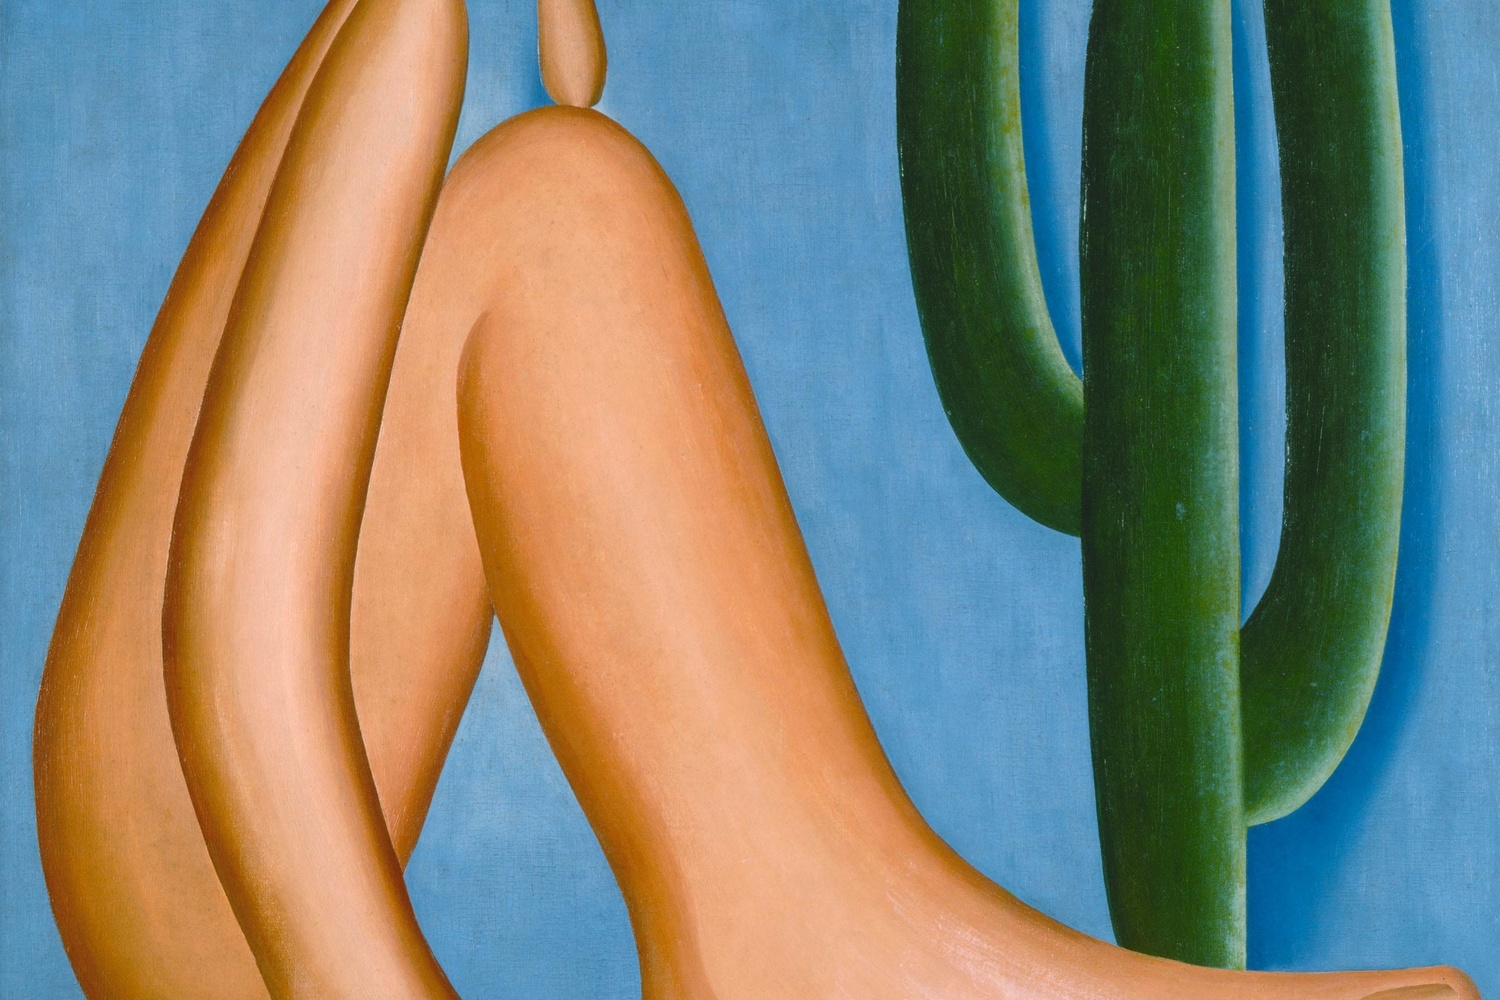 Tarsila do Amaral. Abaporu. 1928. Oil on canvas, 33 7/16 x 28 3/4″ (85 x 73 cm). Collection MALBA, Museo de Arte Latinoamericano de Buenos Aires. © Tarsila do Amaral Licenciamentos